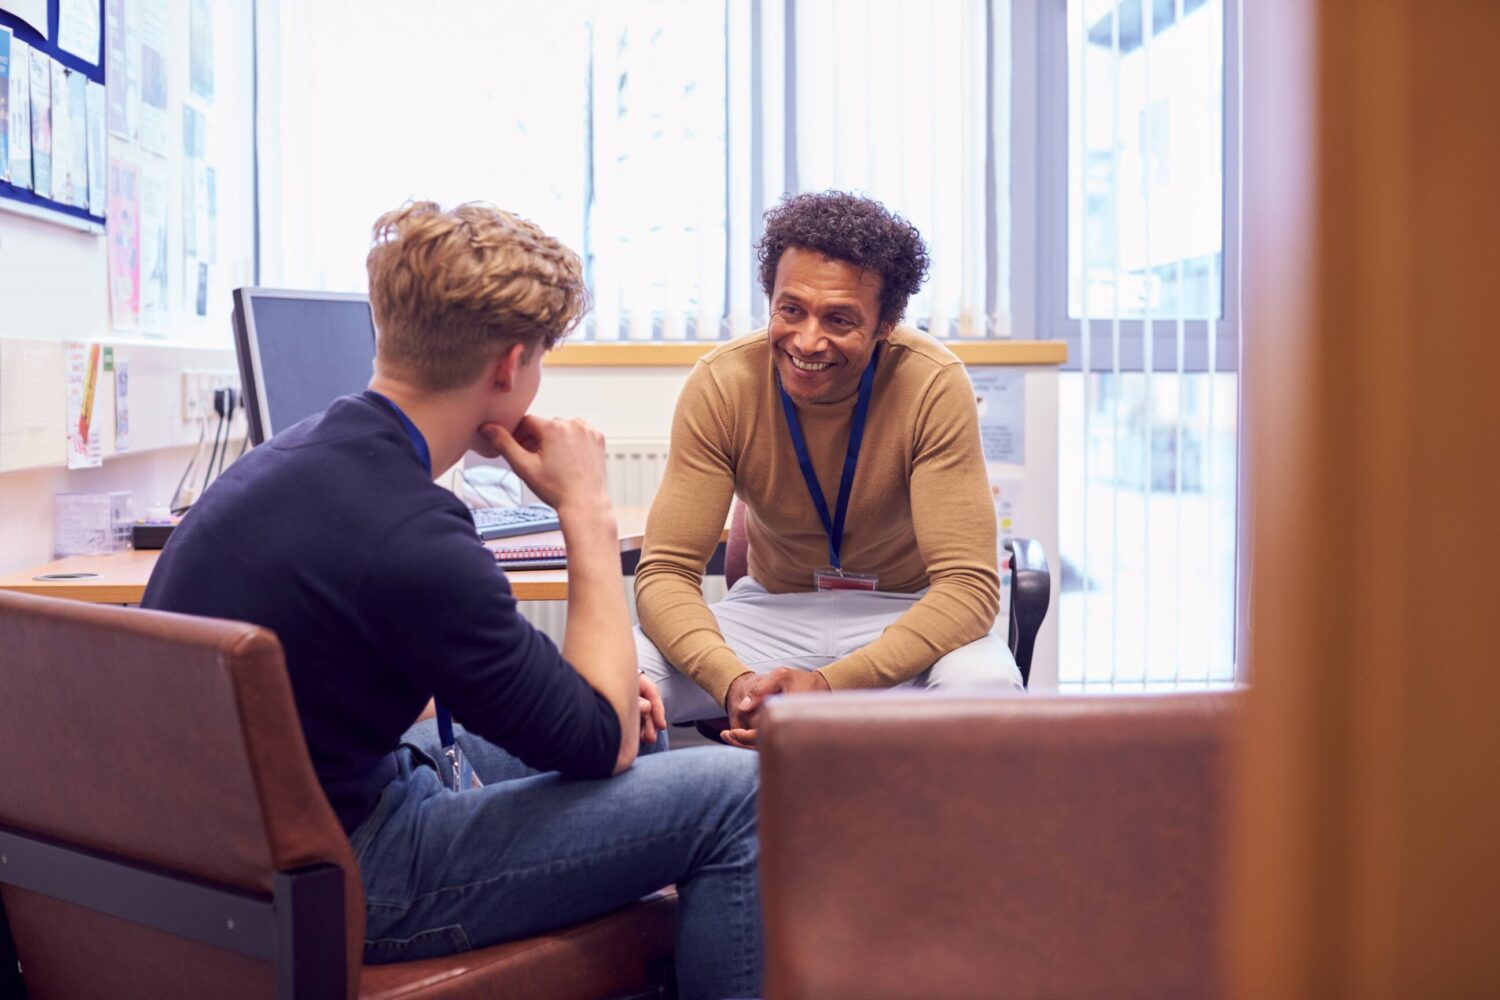 Male College Student Meeting With Campus Counselor